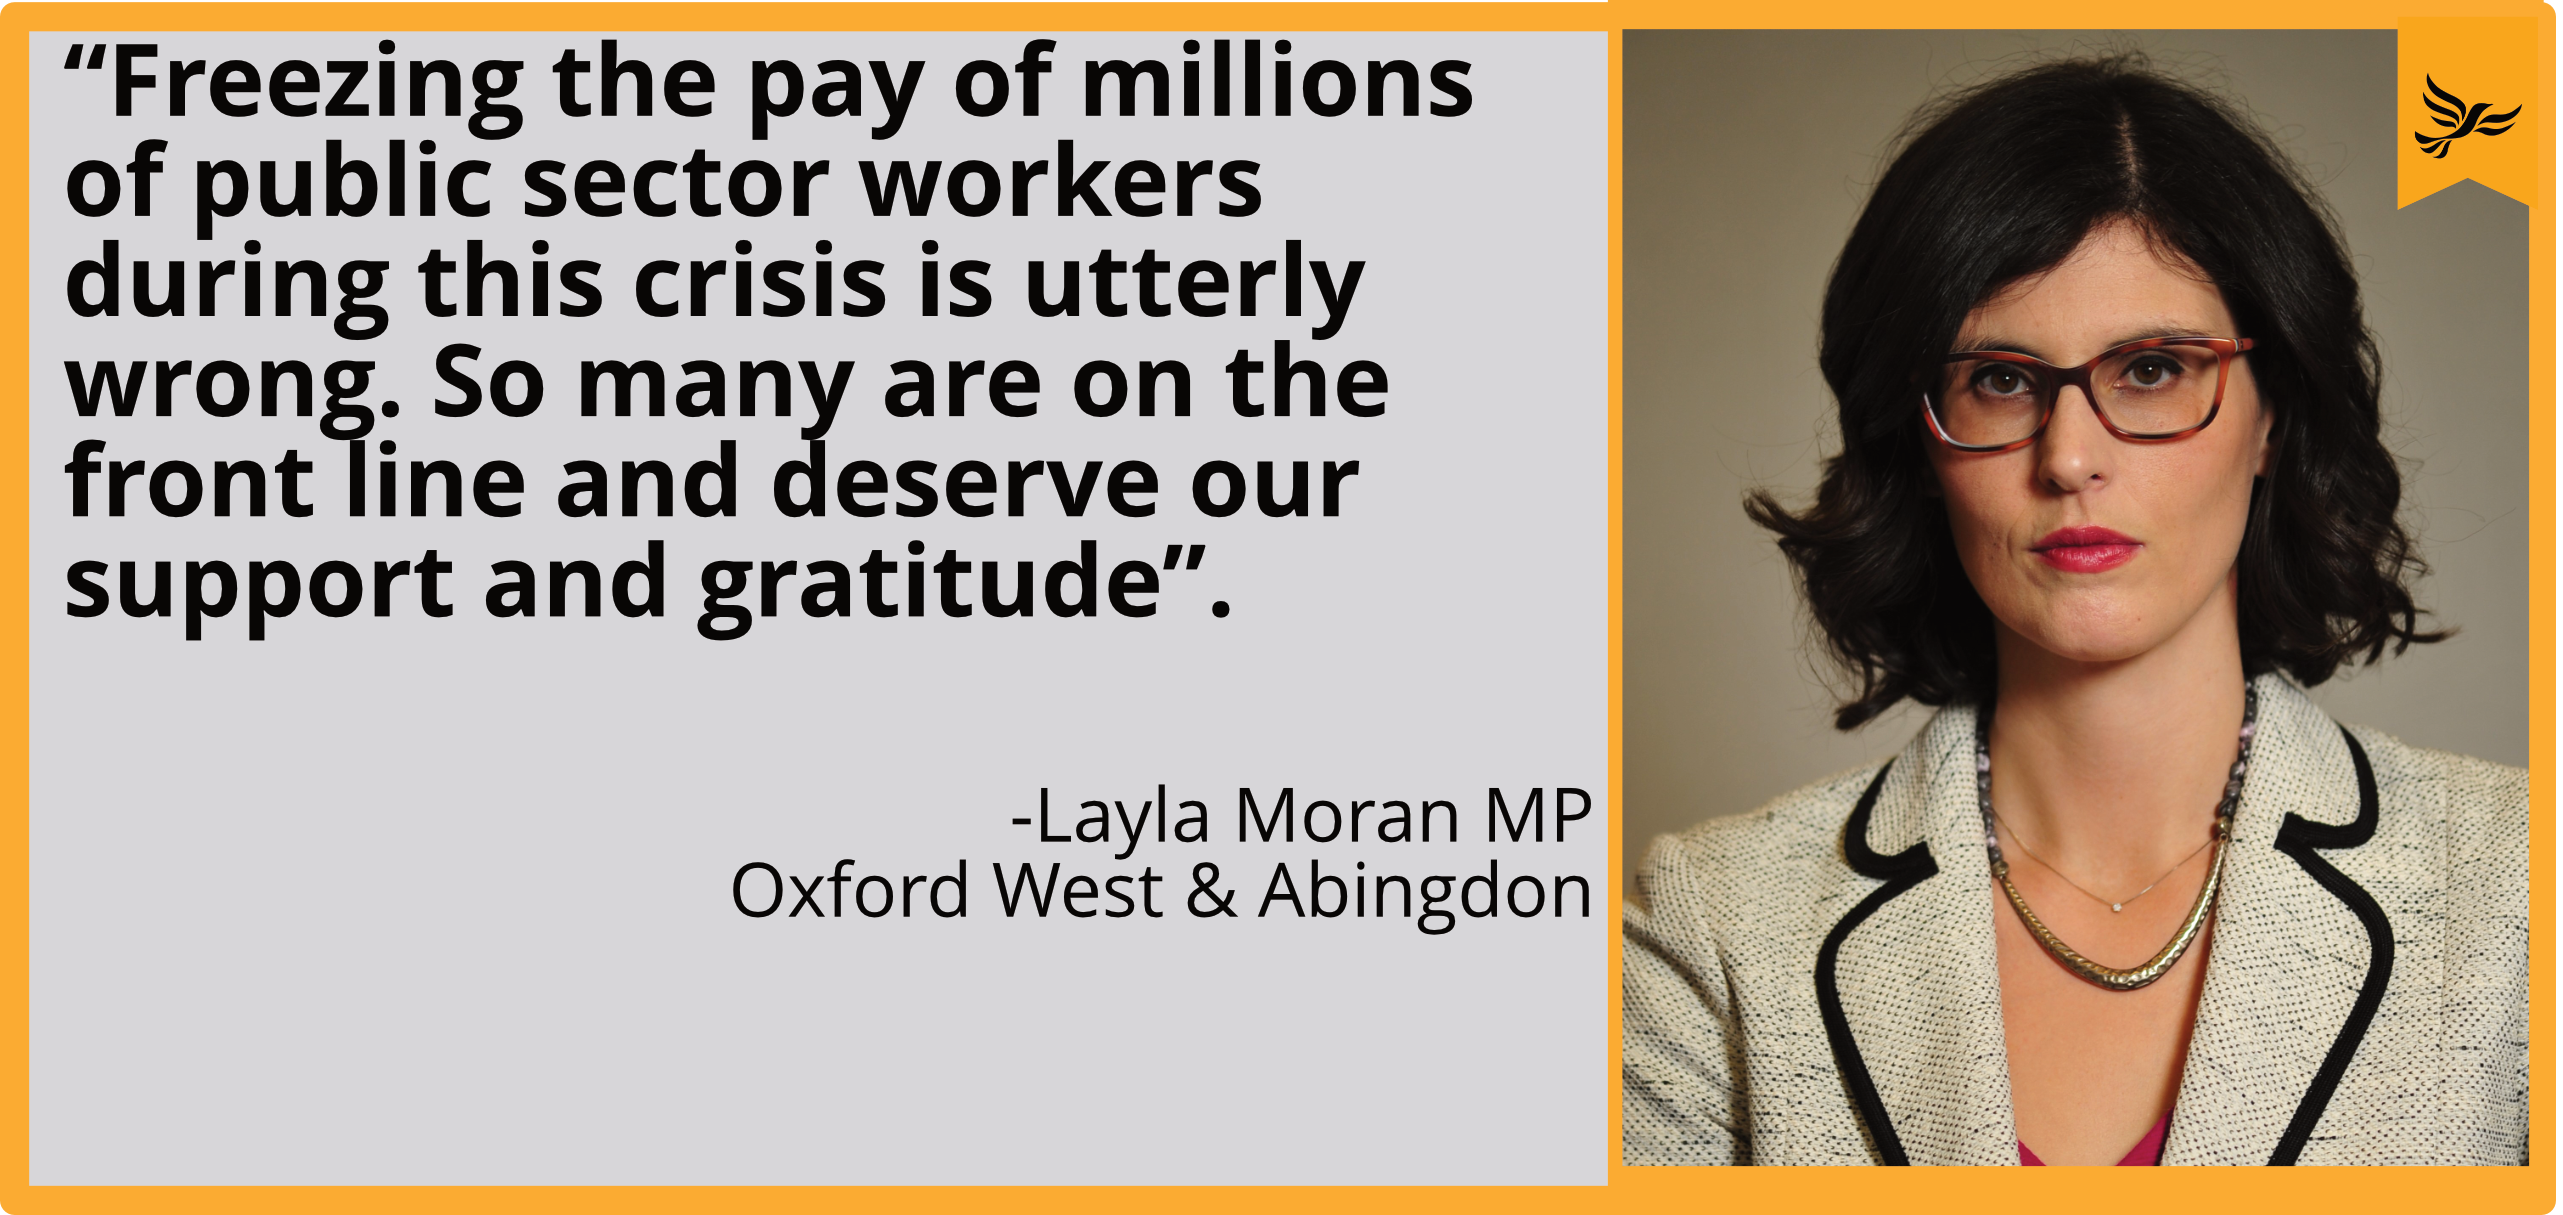 """Freezing the pay of millions of public sector workers during this crisis is utterly wrong. So many are on the front line and deserve our support and gratitude."